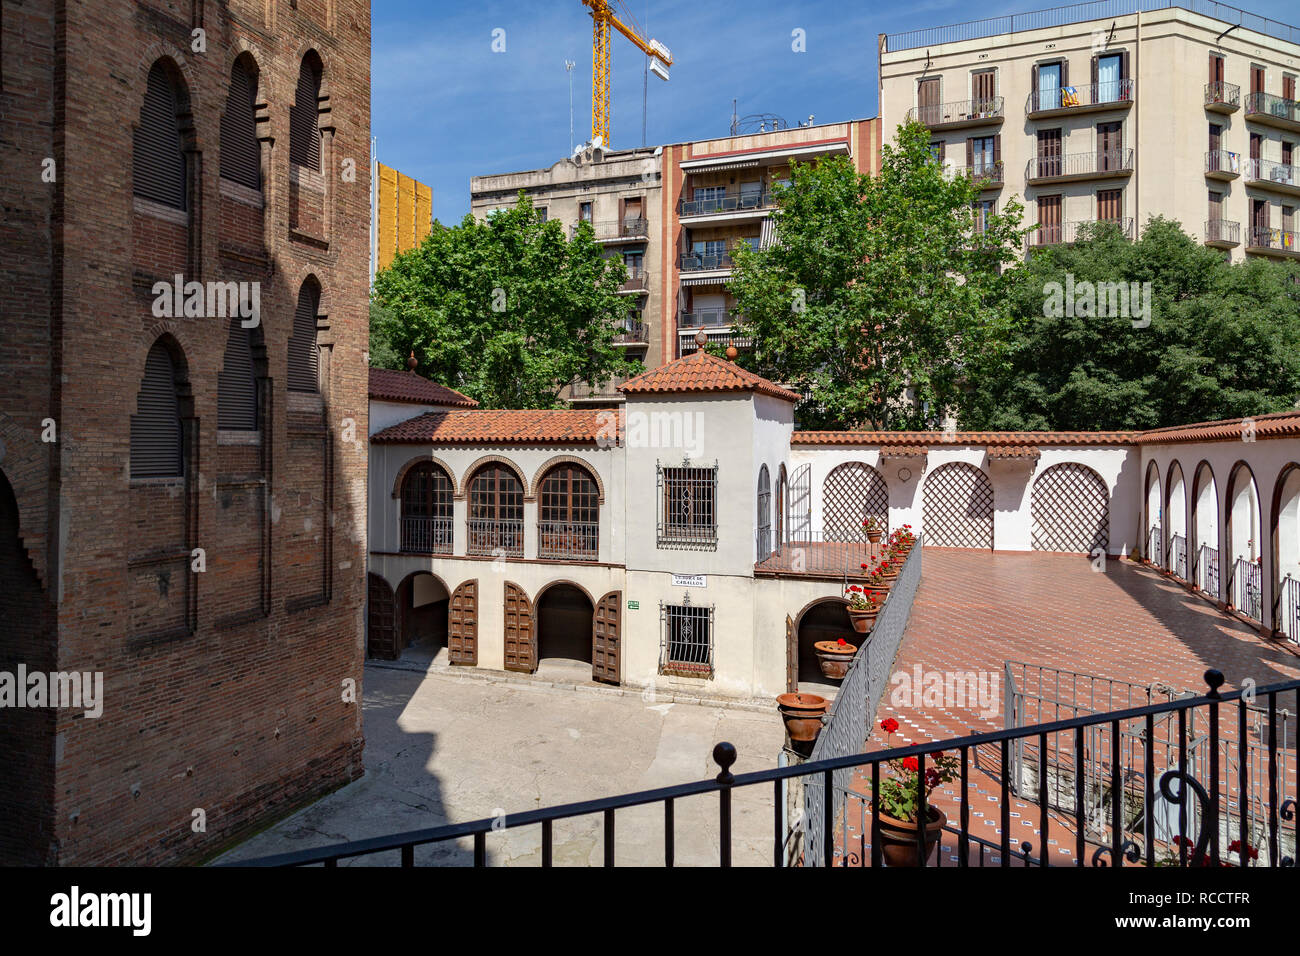 The Plaza Monumental de Barcelona (La Monumental) - Bullring and Bullfighting Museum, Barcelona, Catalonia, Spain - Stock Image